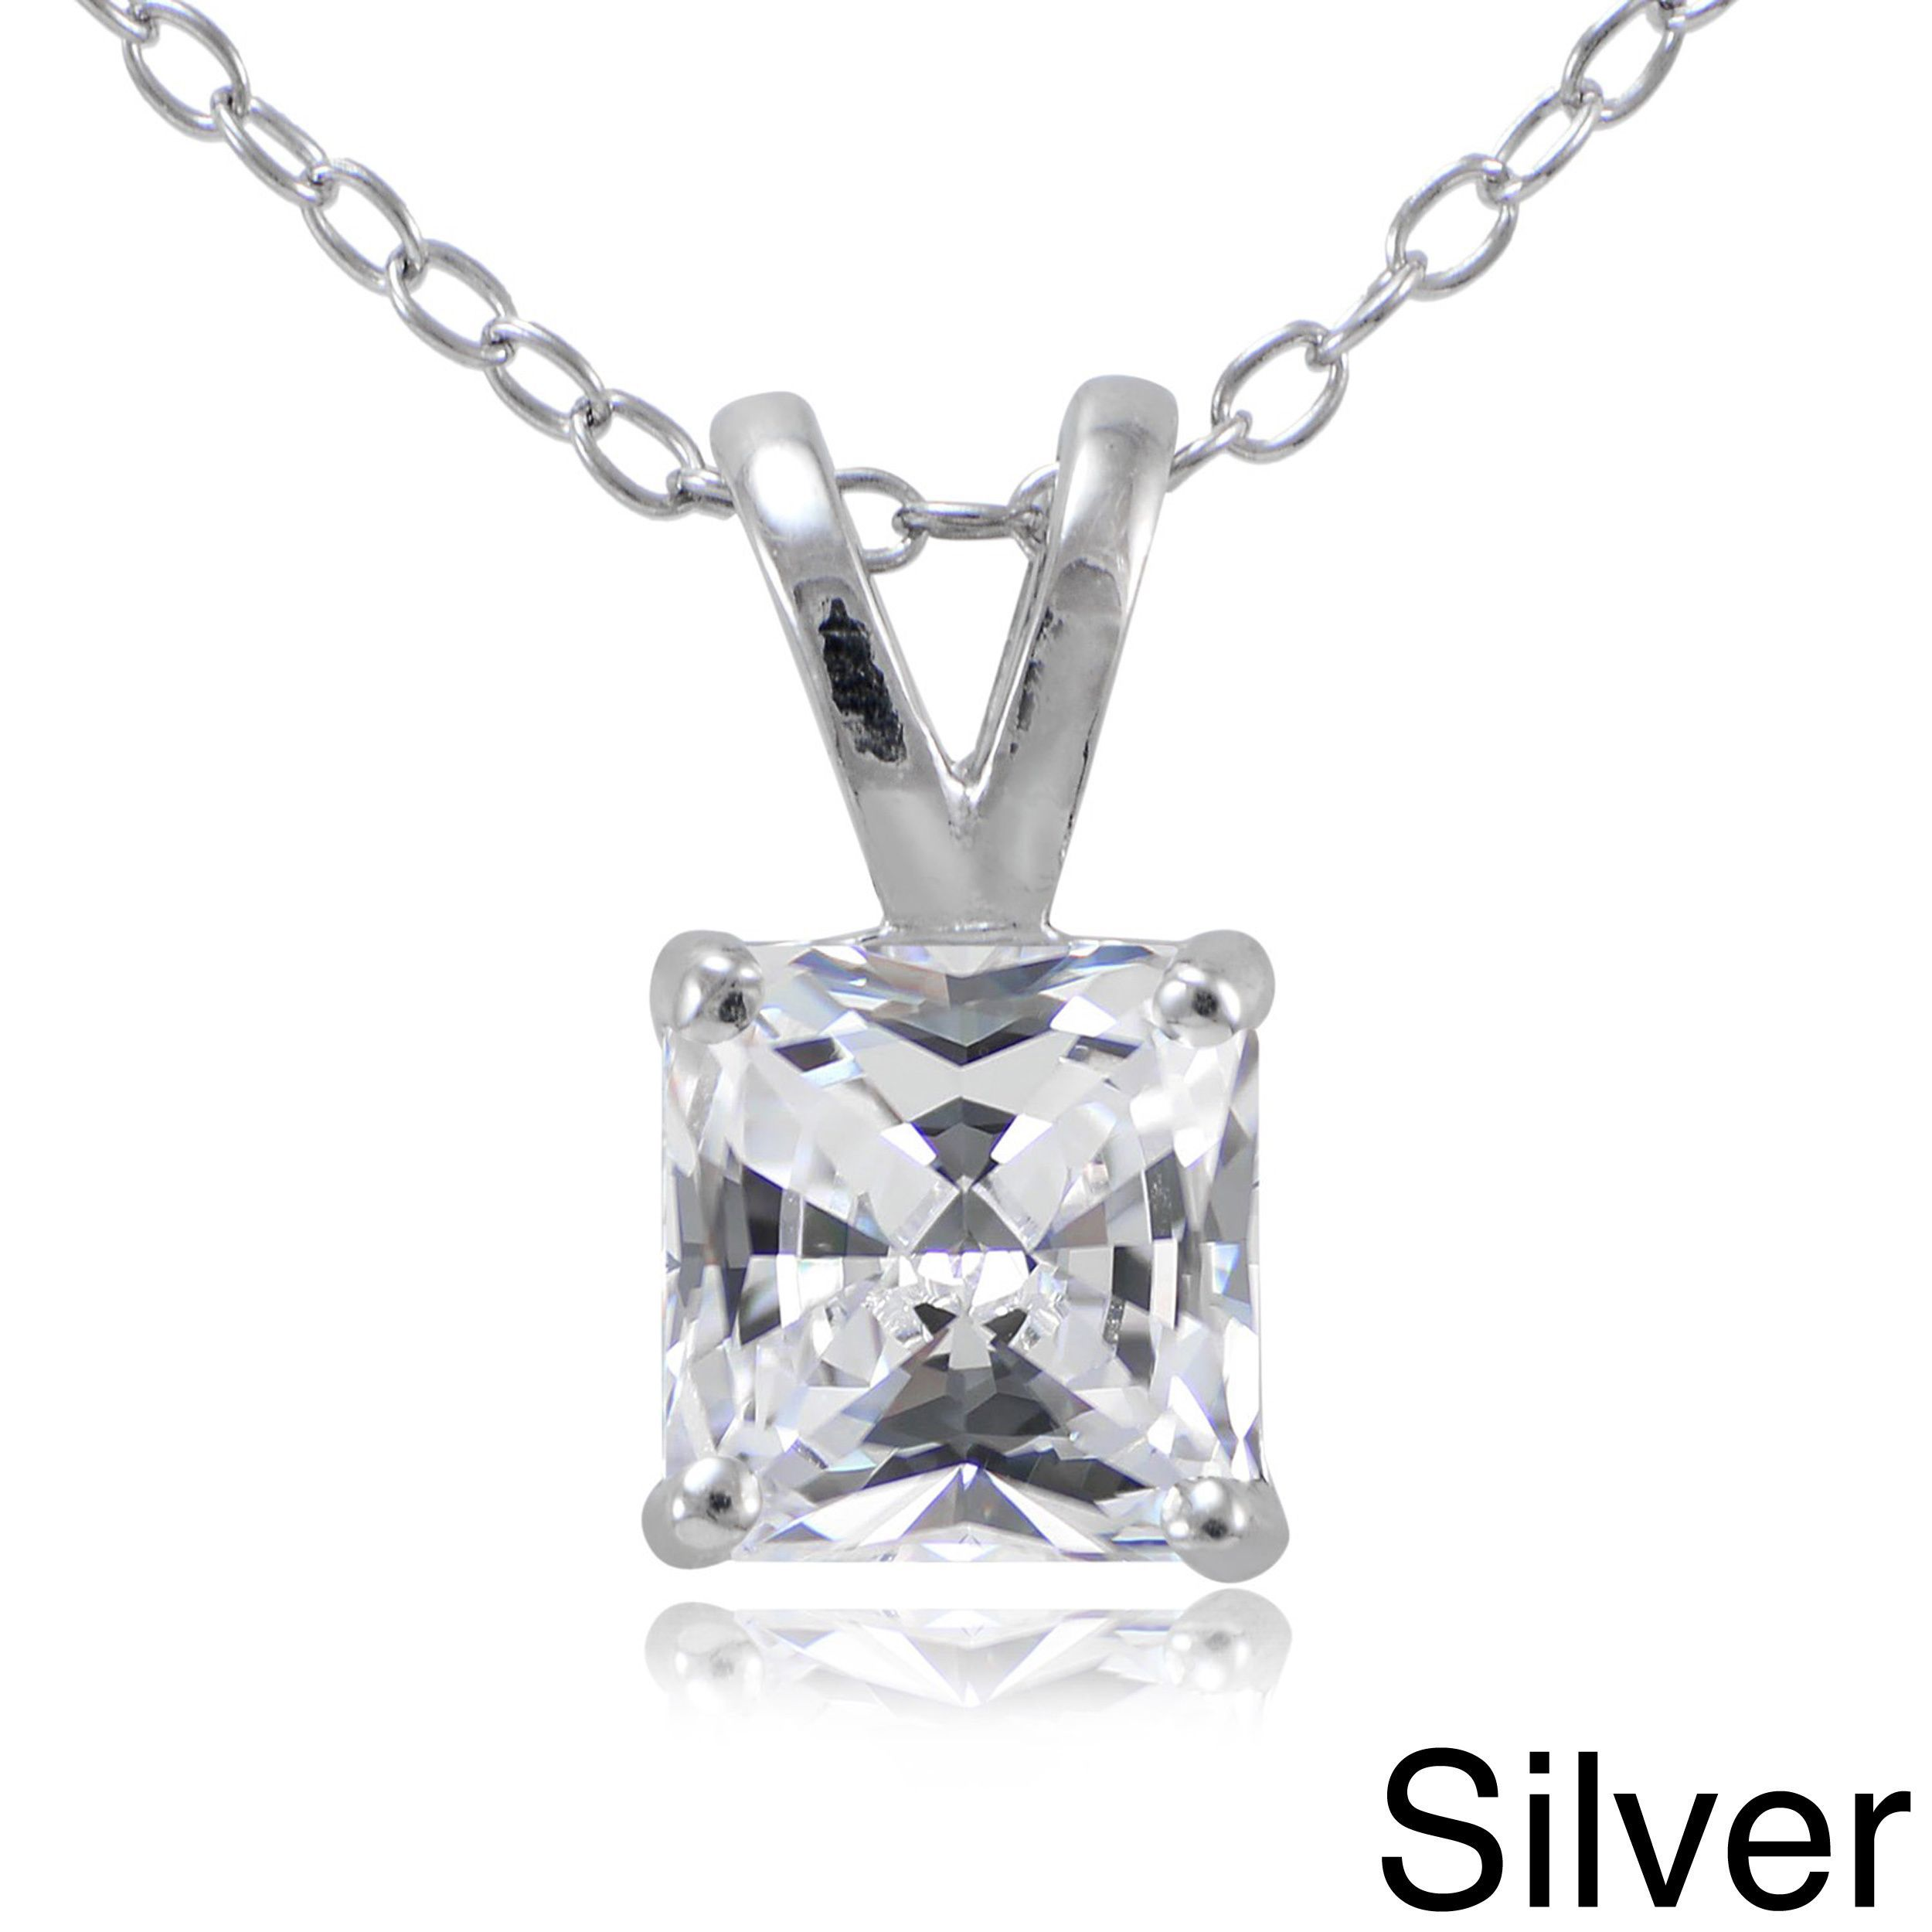 Icz Stonez Sterling Silver Squarecut Cubic Zirconia Necklace Rose